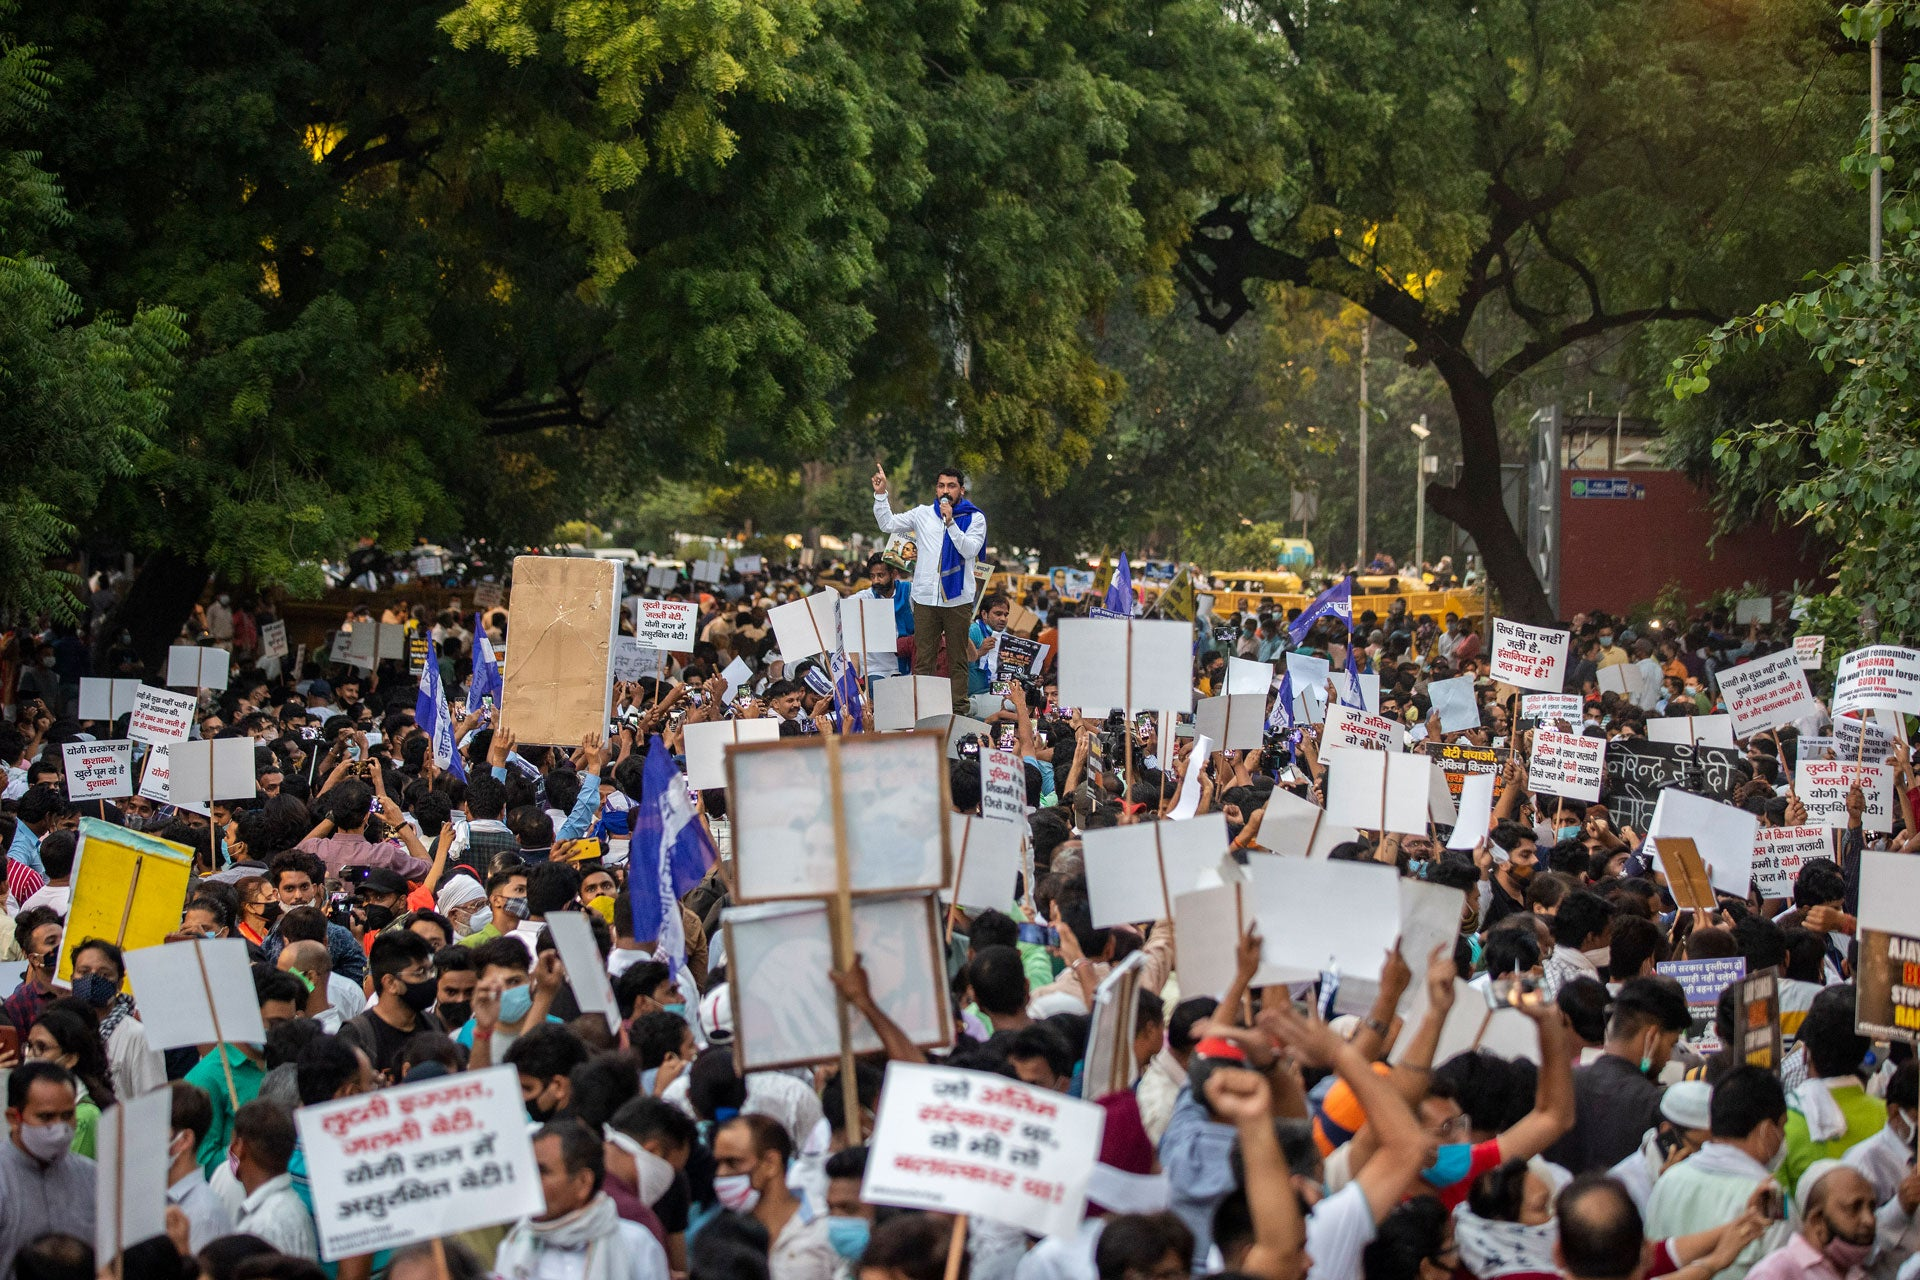 Protesting Sexual Assault in India Isn't a 'Conspiracy'